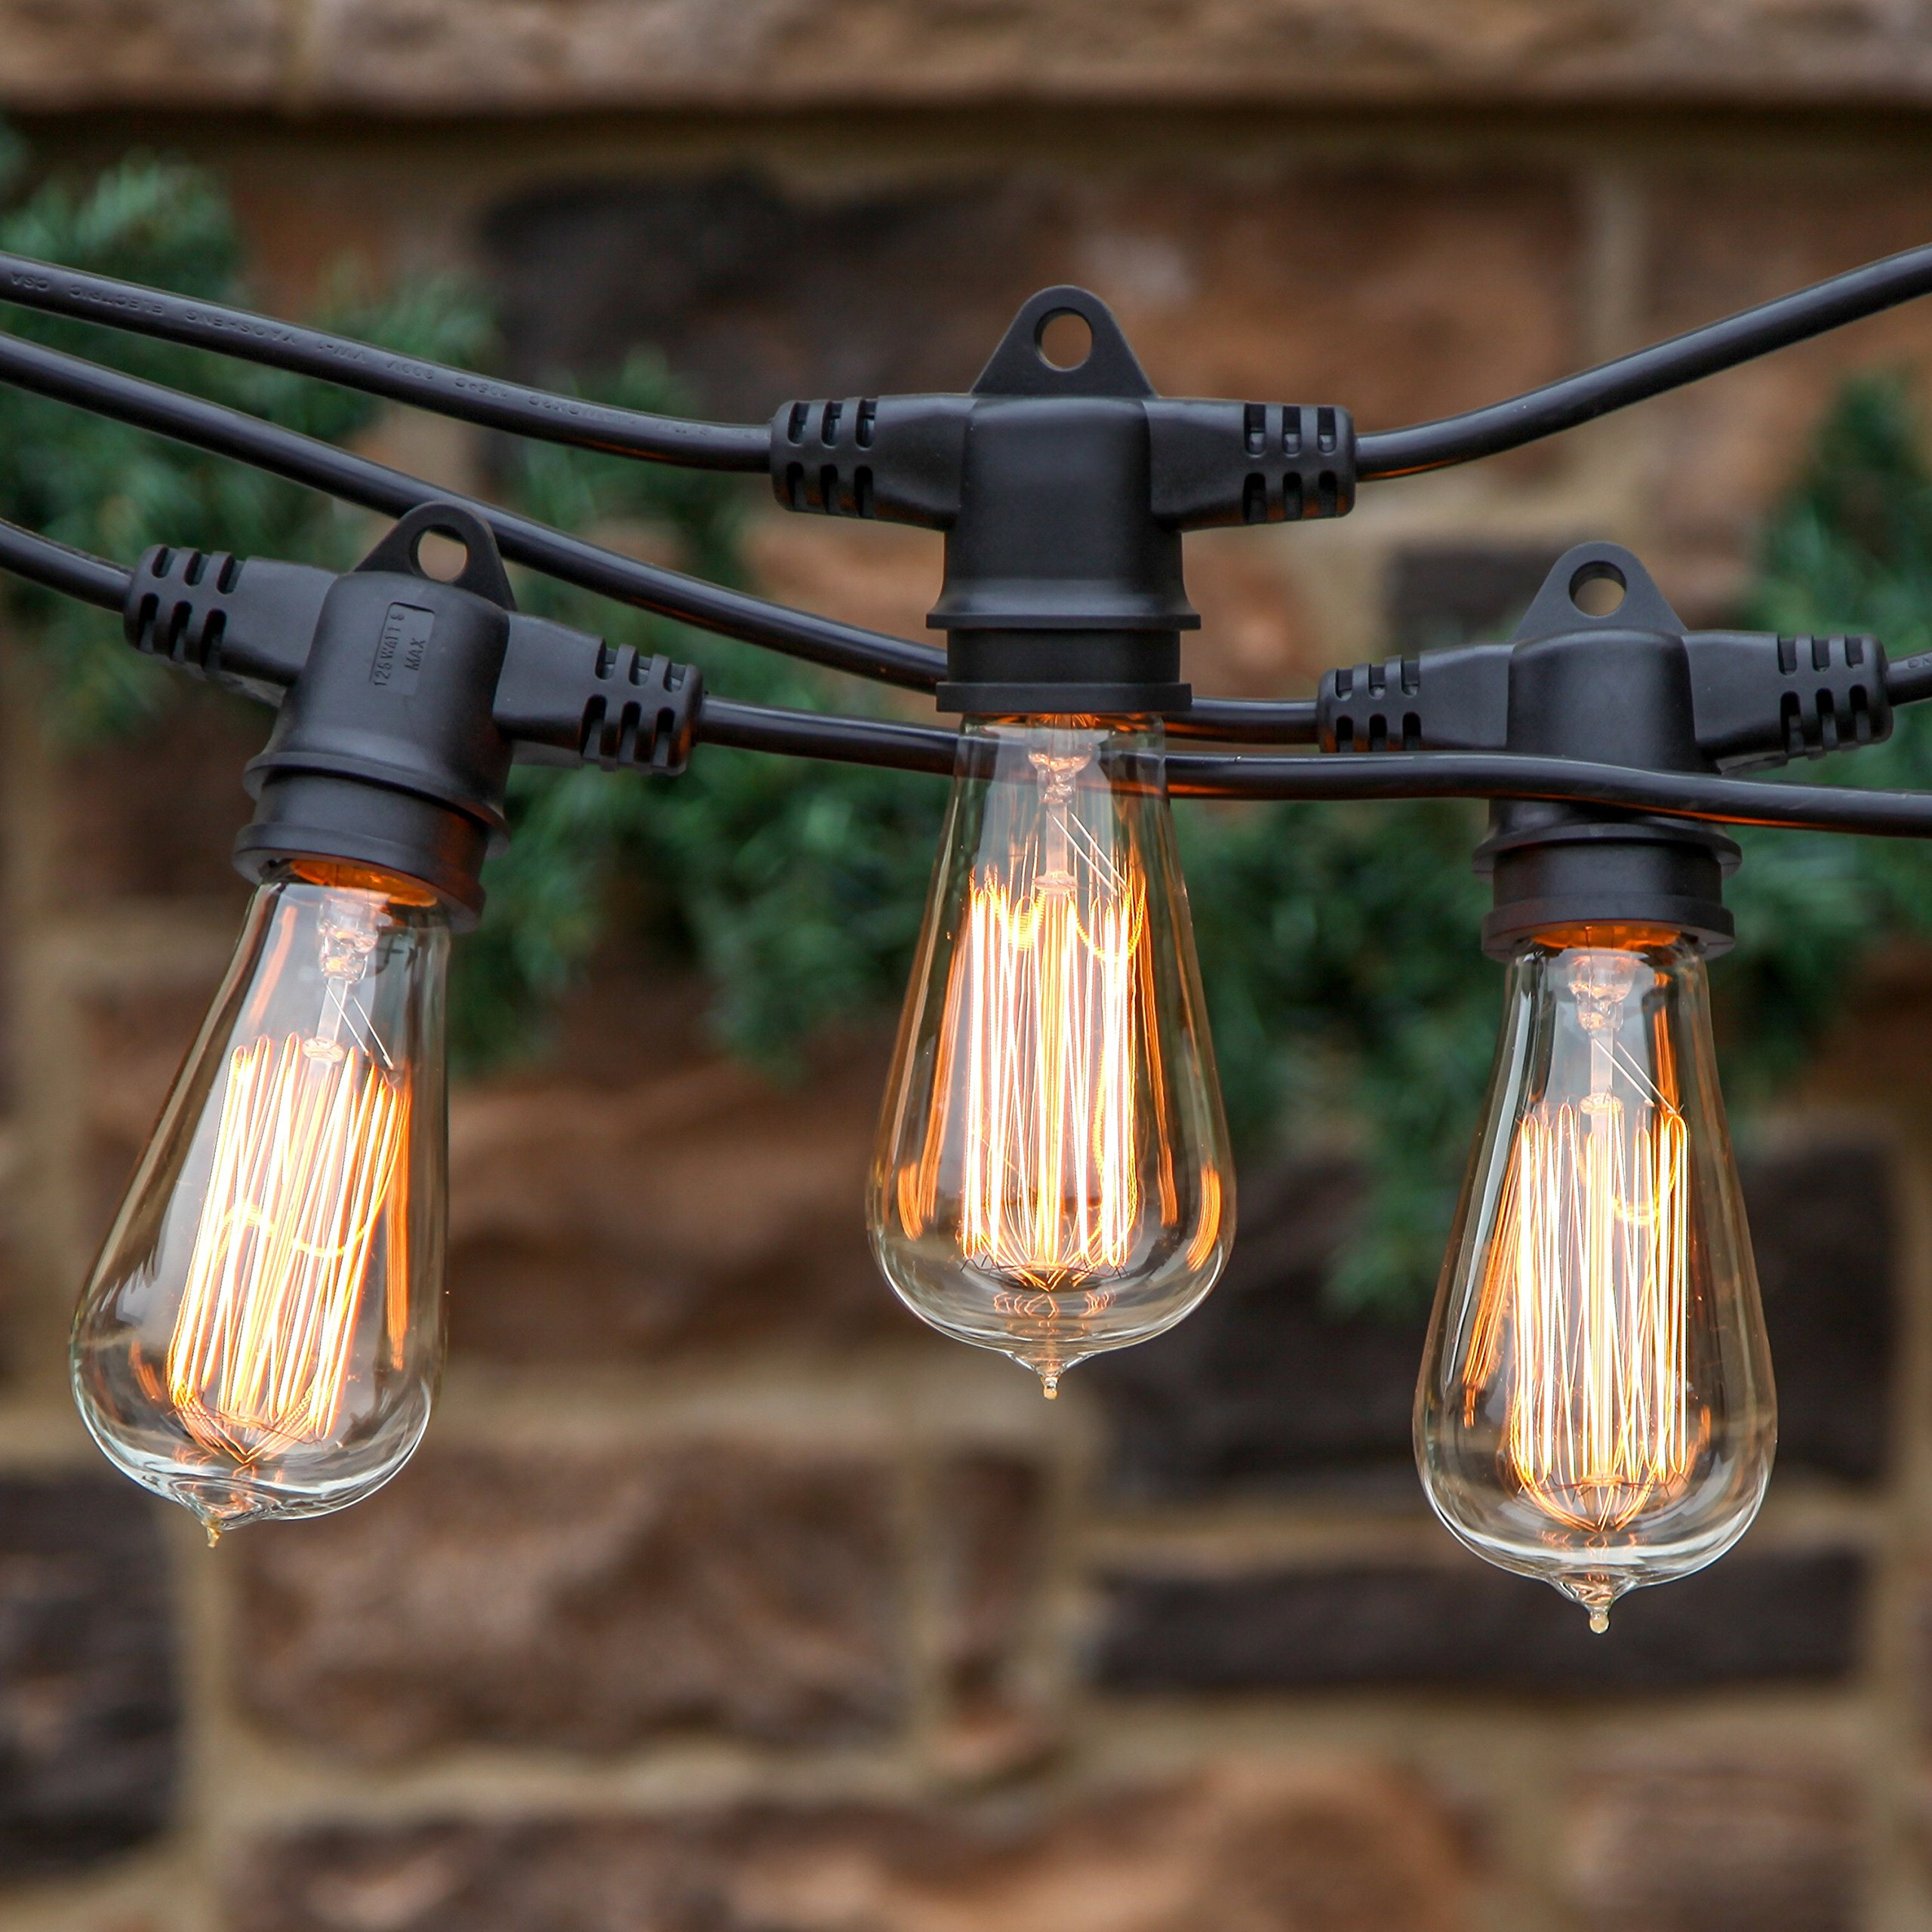 Solar Outdoor String Lights Costco: Ambience Pro Vintage Edition Outdoor